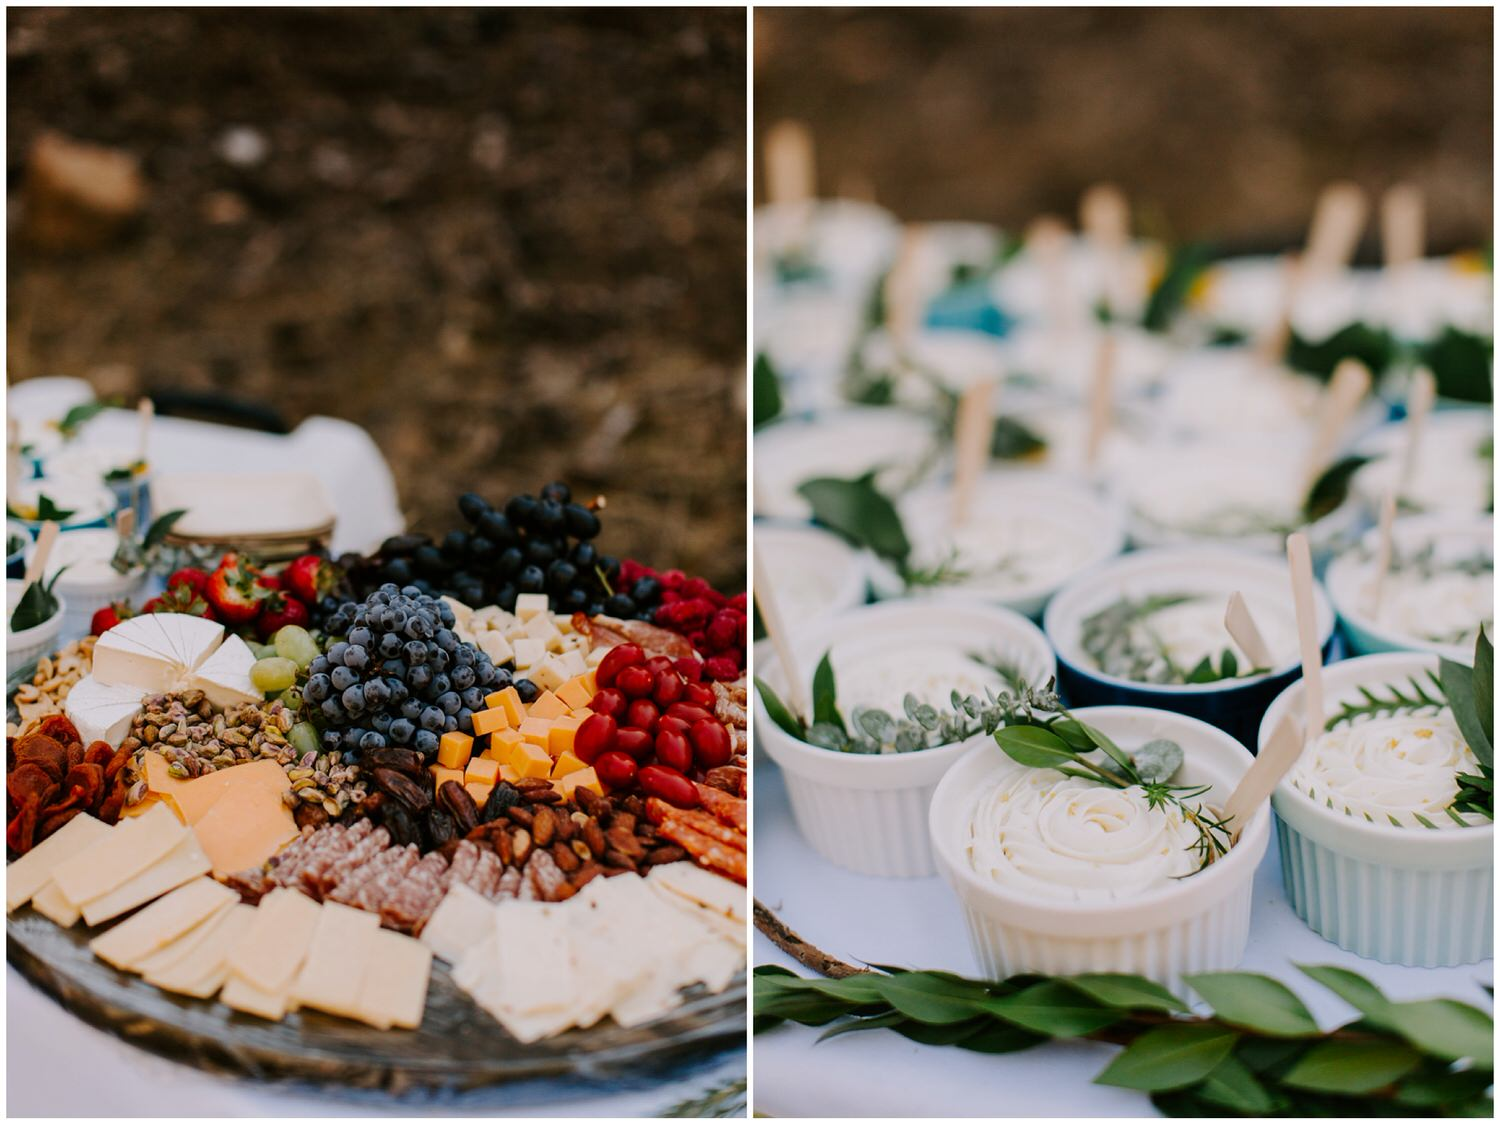 charcuterie board and cheesecake at intimate sequoia national park wedding